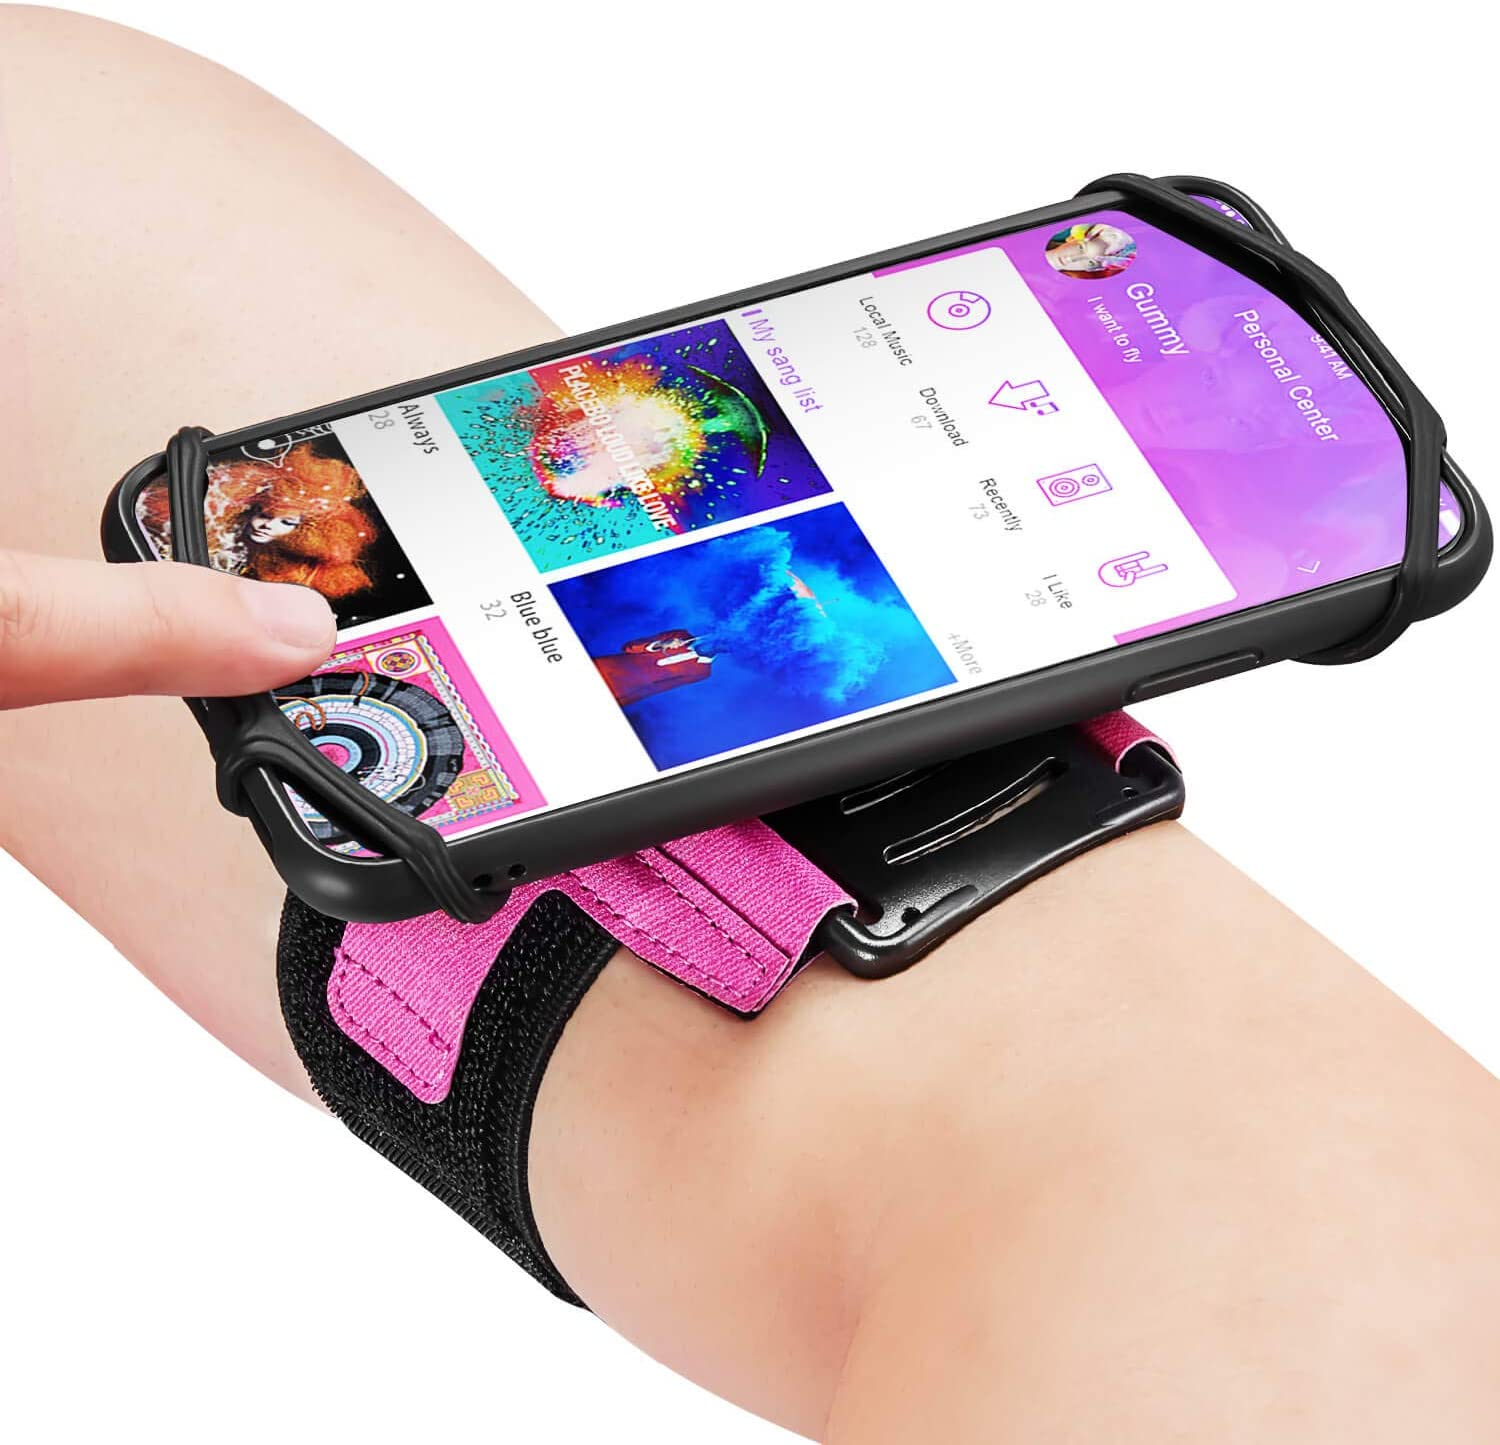 Newppon Cell Phone Holder Armbands :with Key Pocket & 360° Rotatable Compatible for iPhone 12 Pro/12 Mini/SE 2020/11 Pro/Xs/XR/X/8/Plus, Fits All 4-6.7 Inch Smartphones,for Exercise Workout